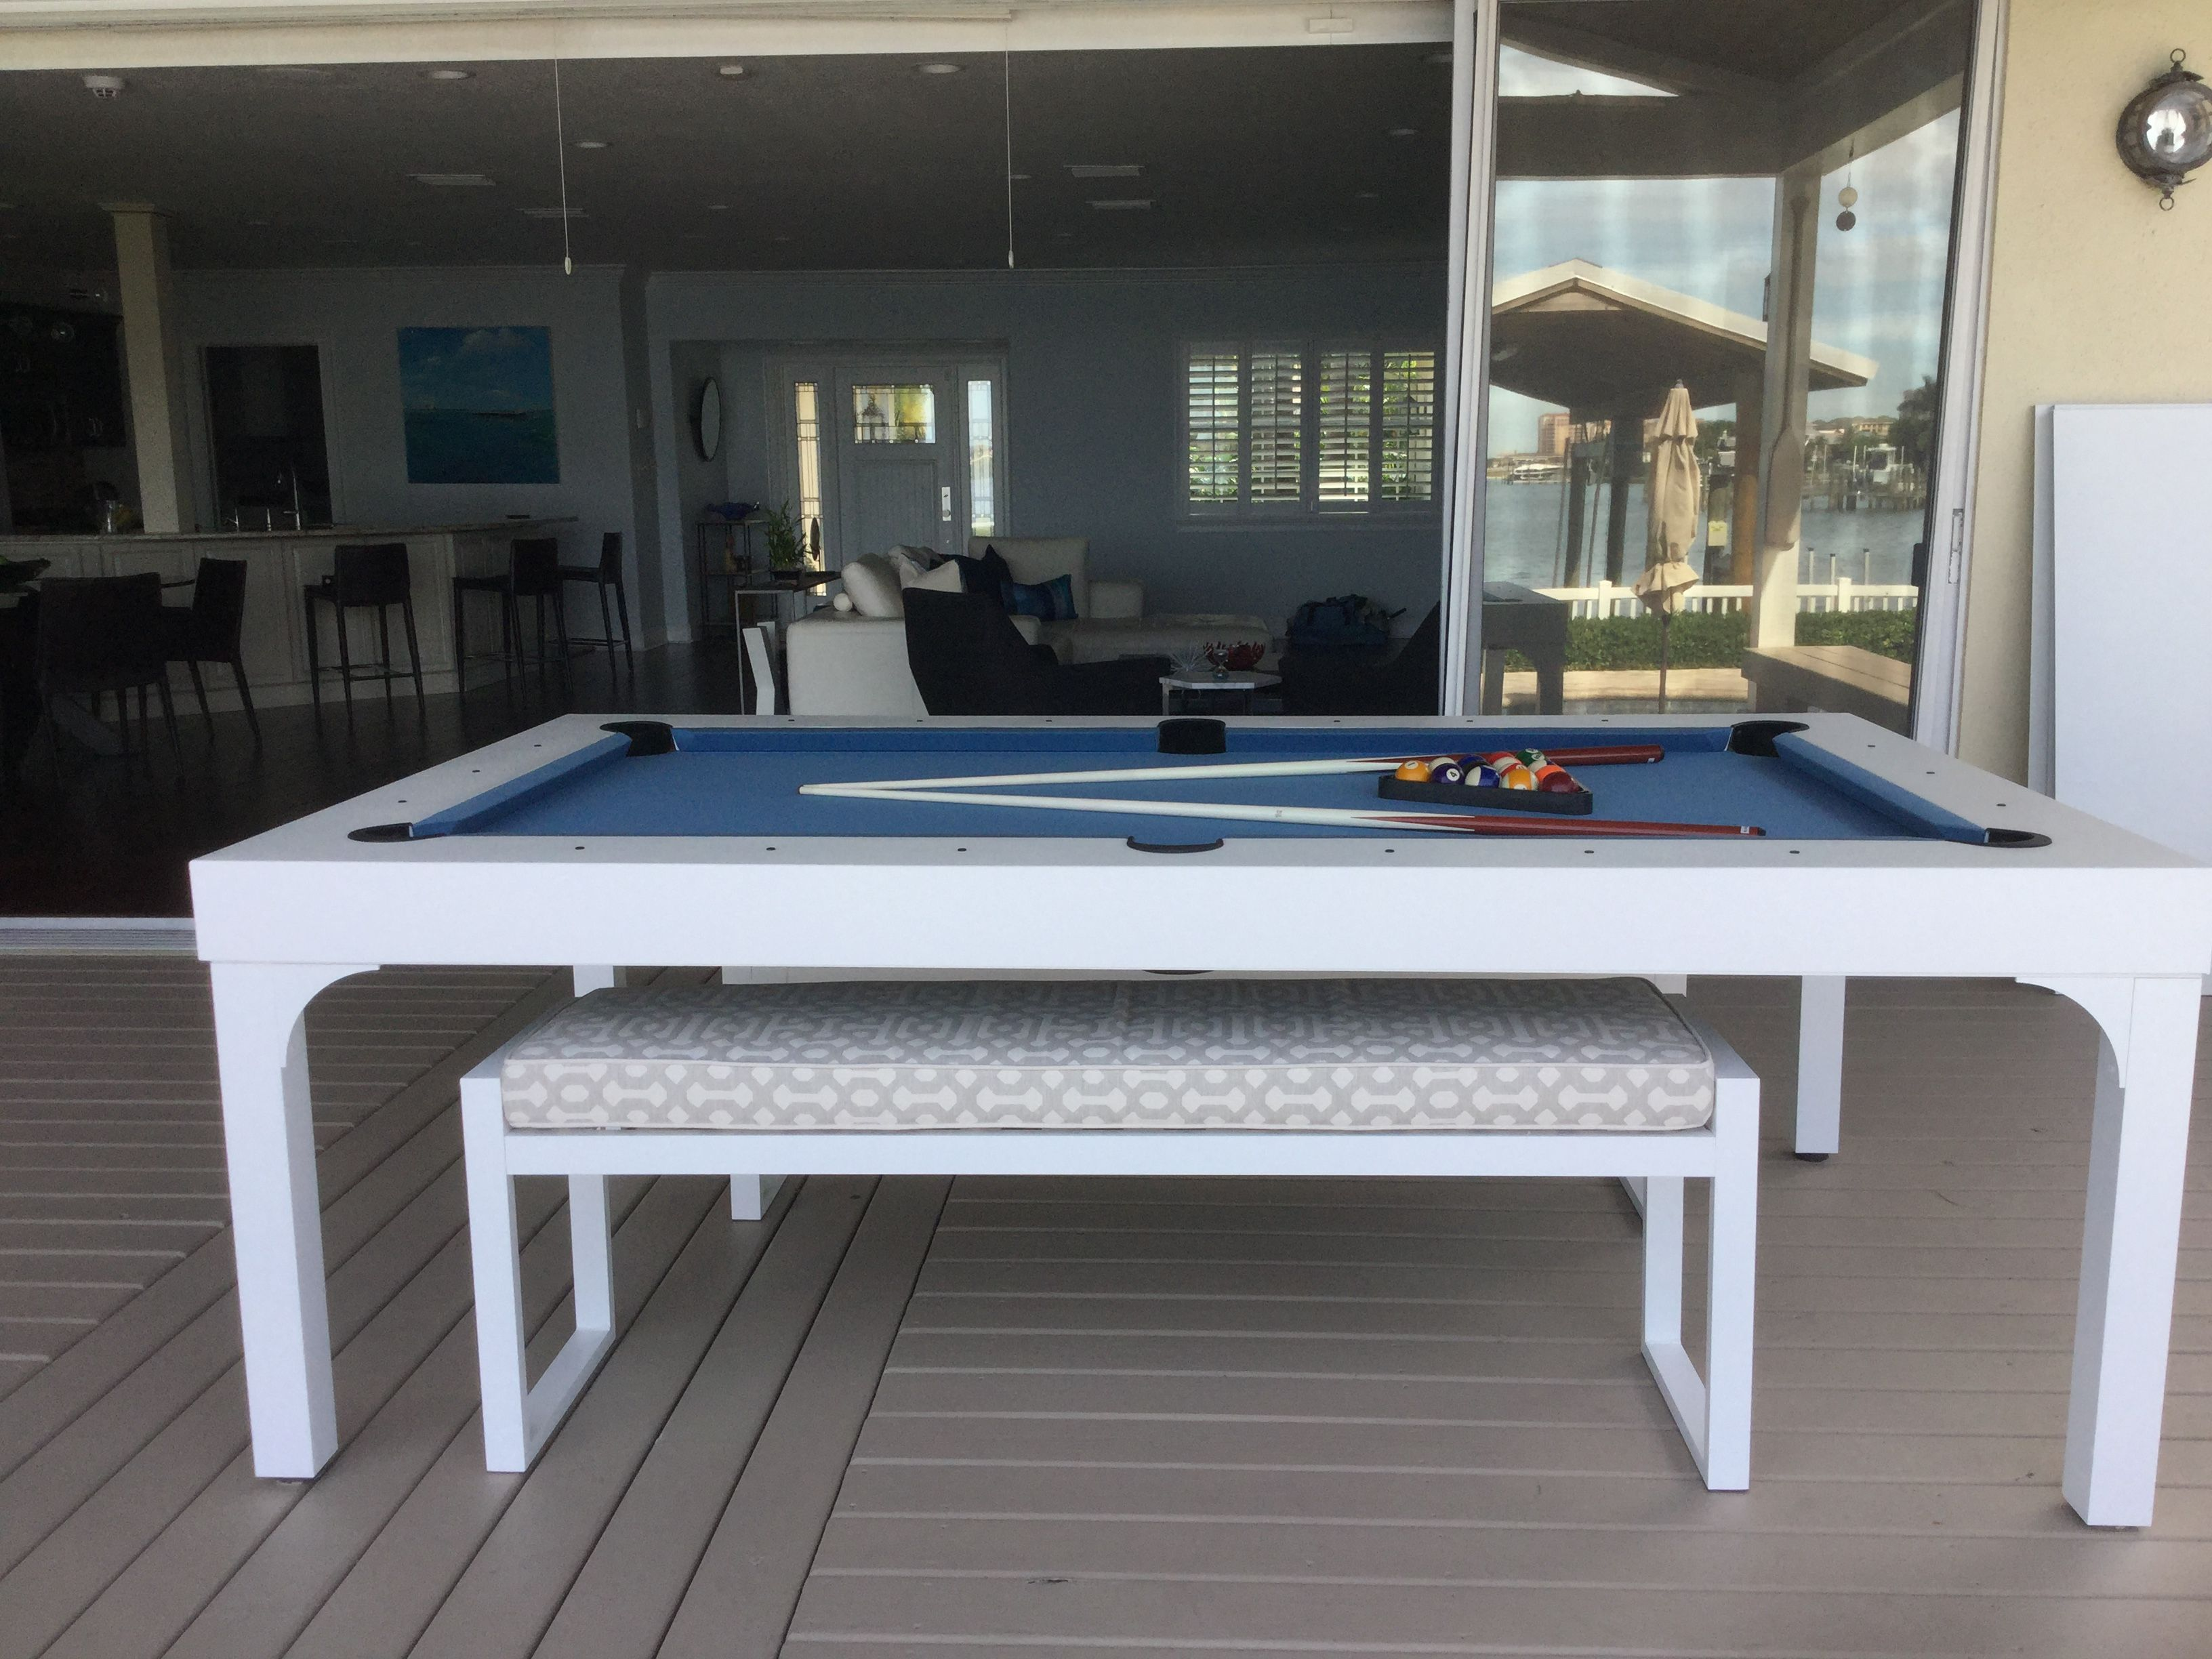 Get Outside And Play Some Pool With An All Weather Billiards Pool Table